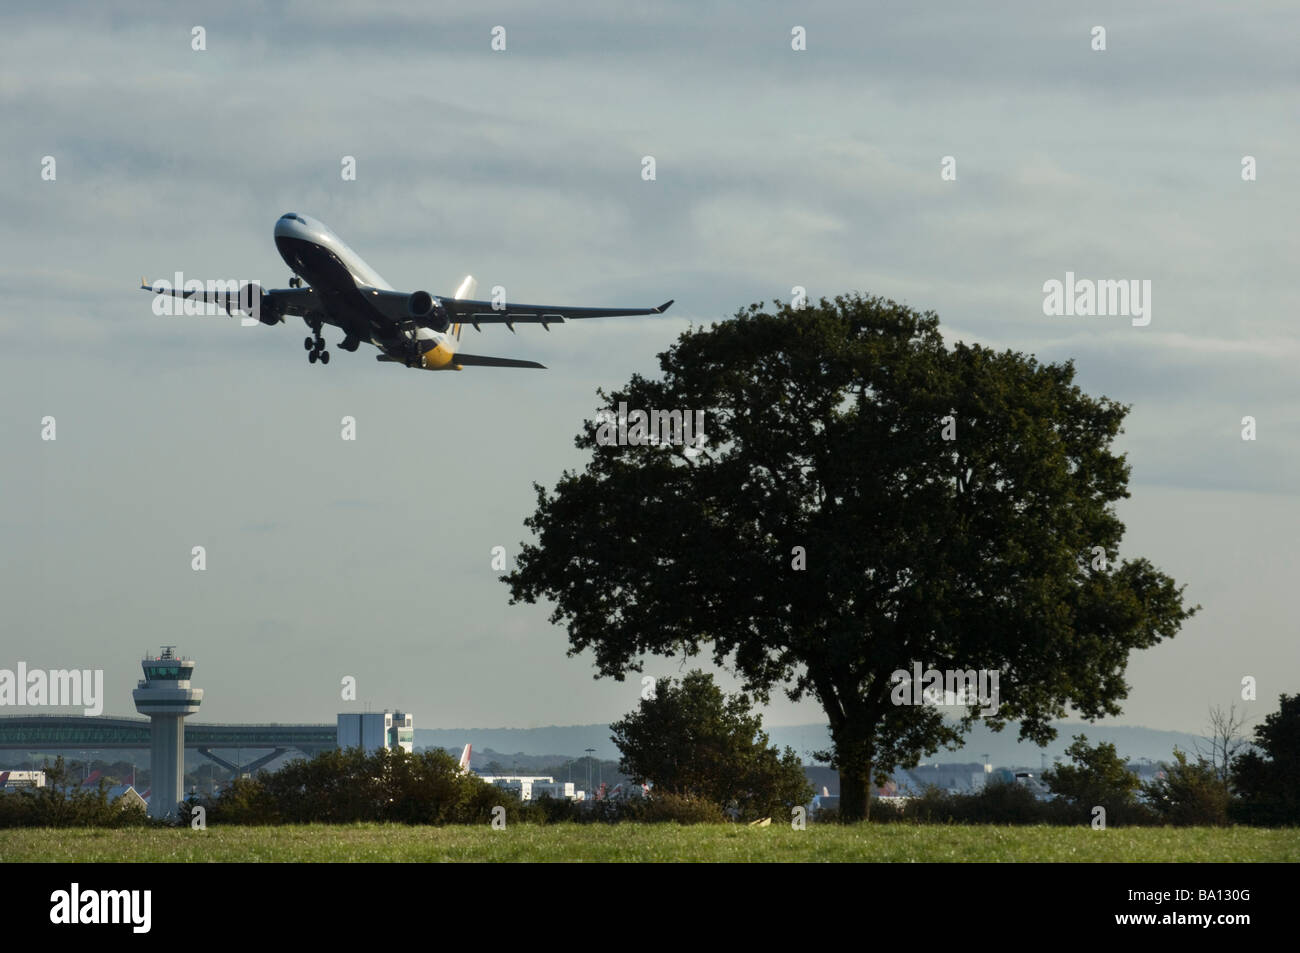 The wheels are retracting into the aircraft fuselage as a Monarch Airlines Jet airplane takes off from Gatwick Stock Photo